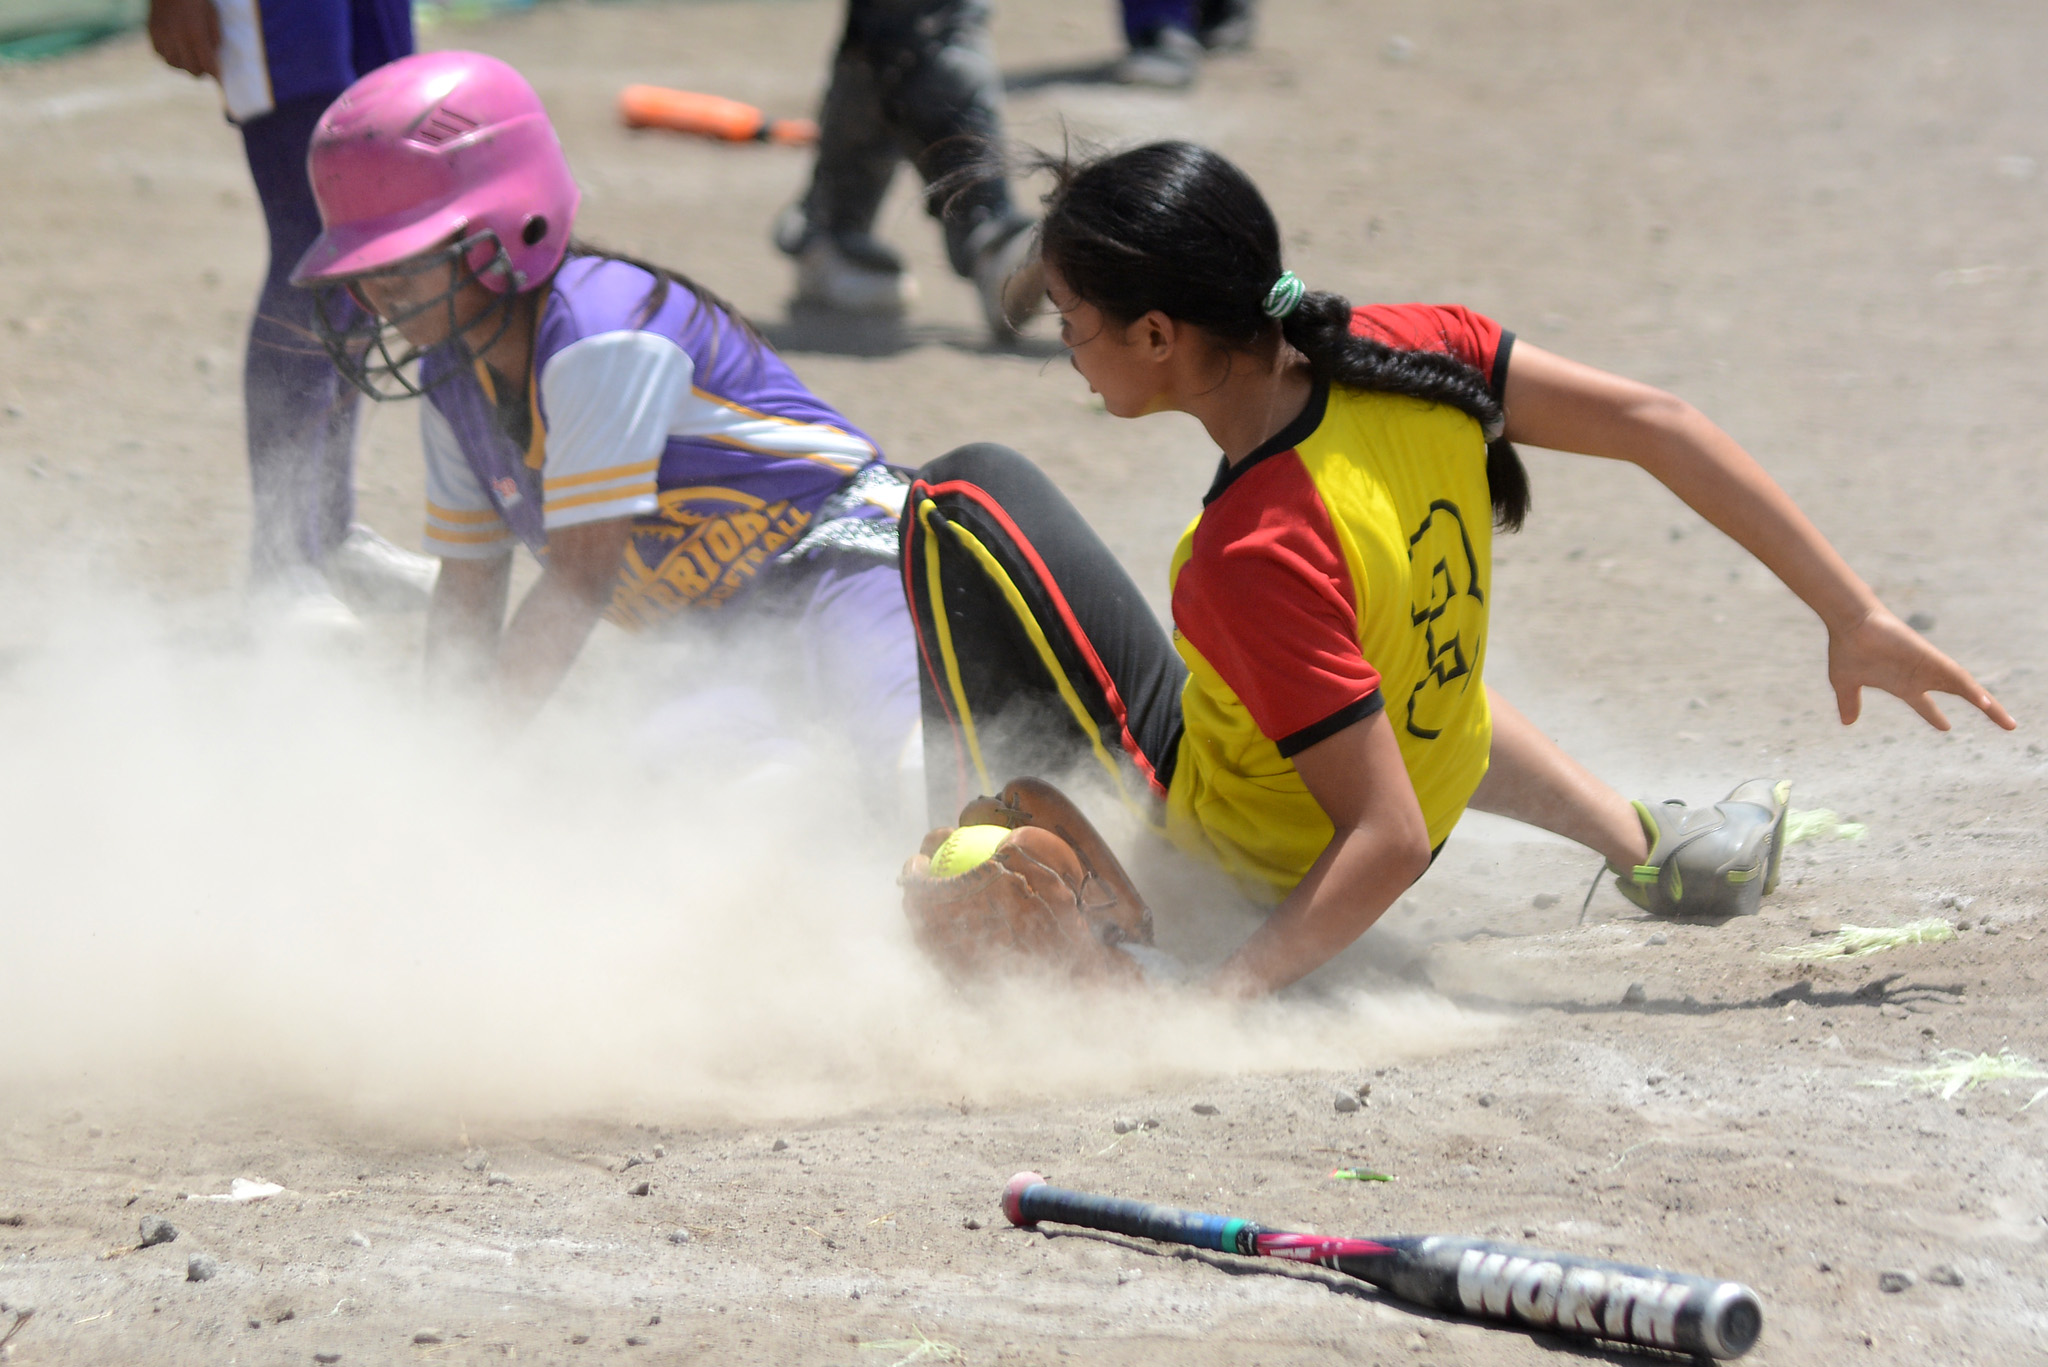 SAFE OR OUT? In this elementary softball match, Soccsksargen wins over Caraga. Photo by Roy Secretario/Rappler